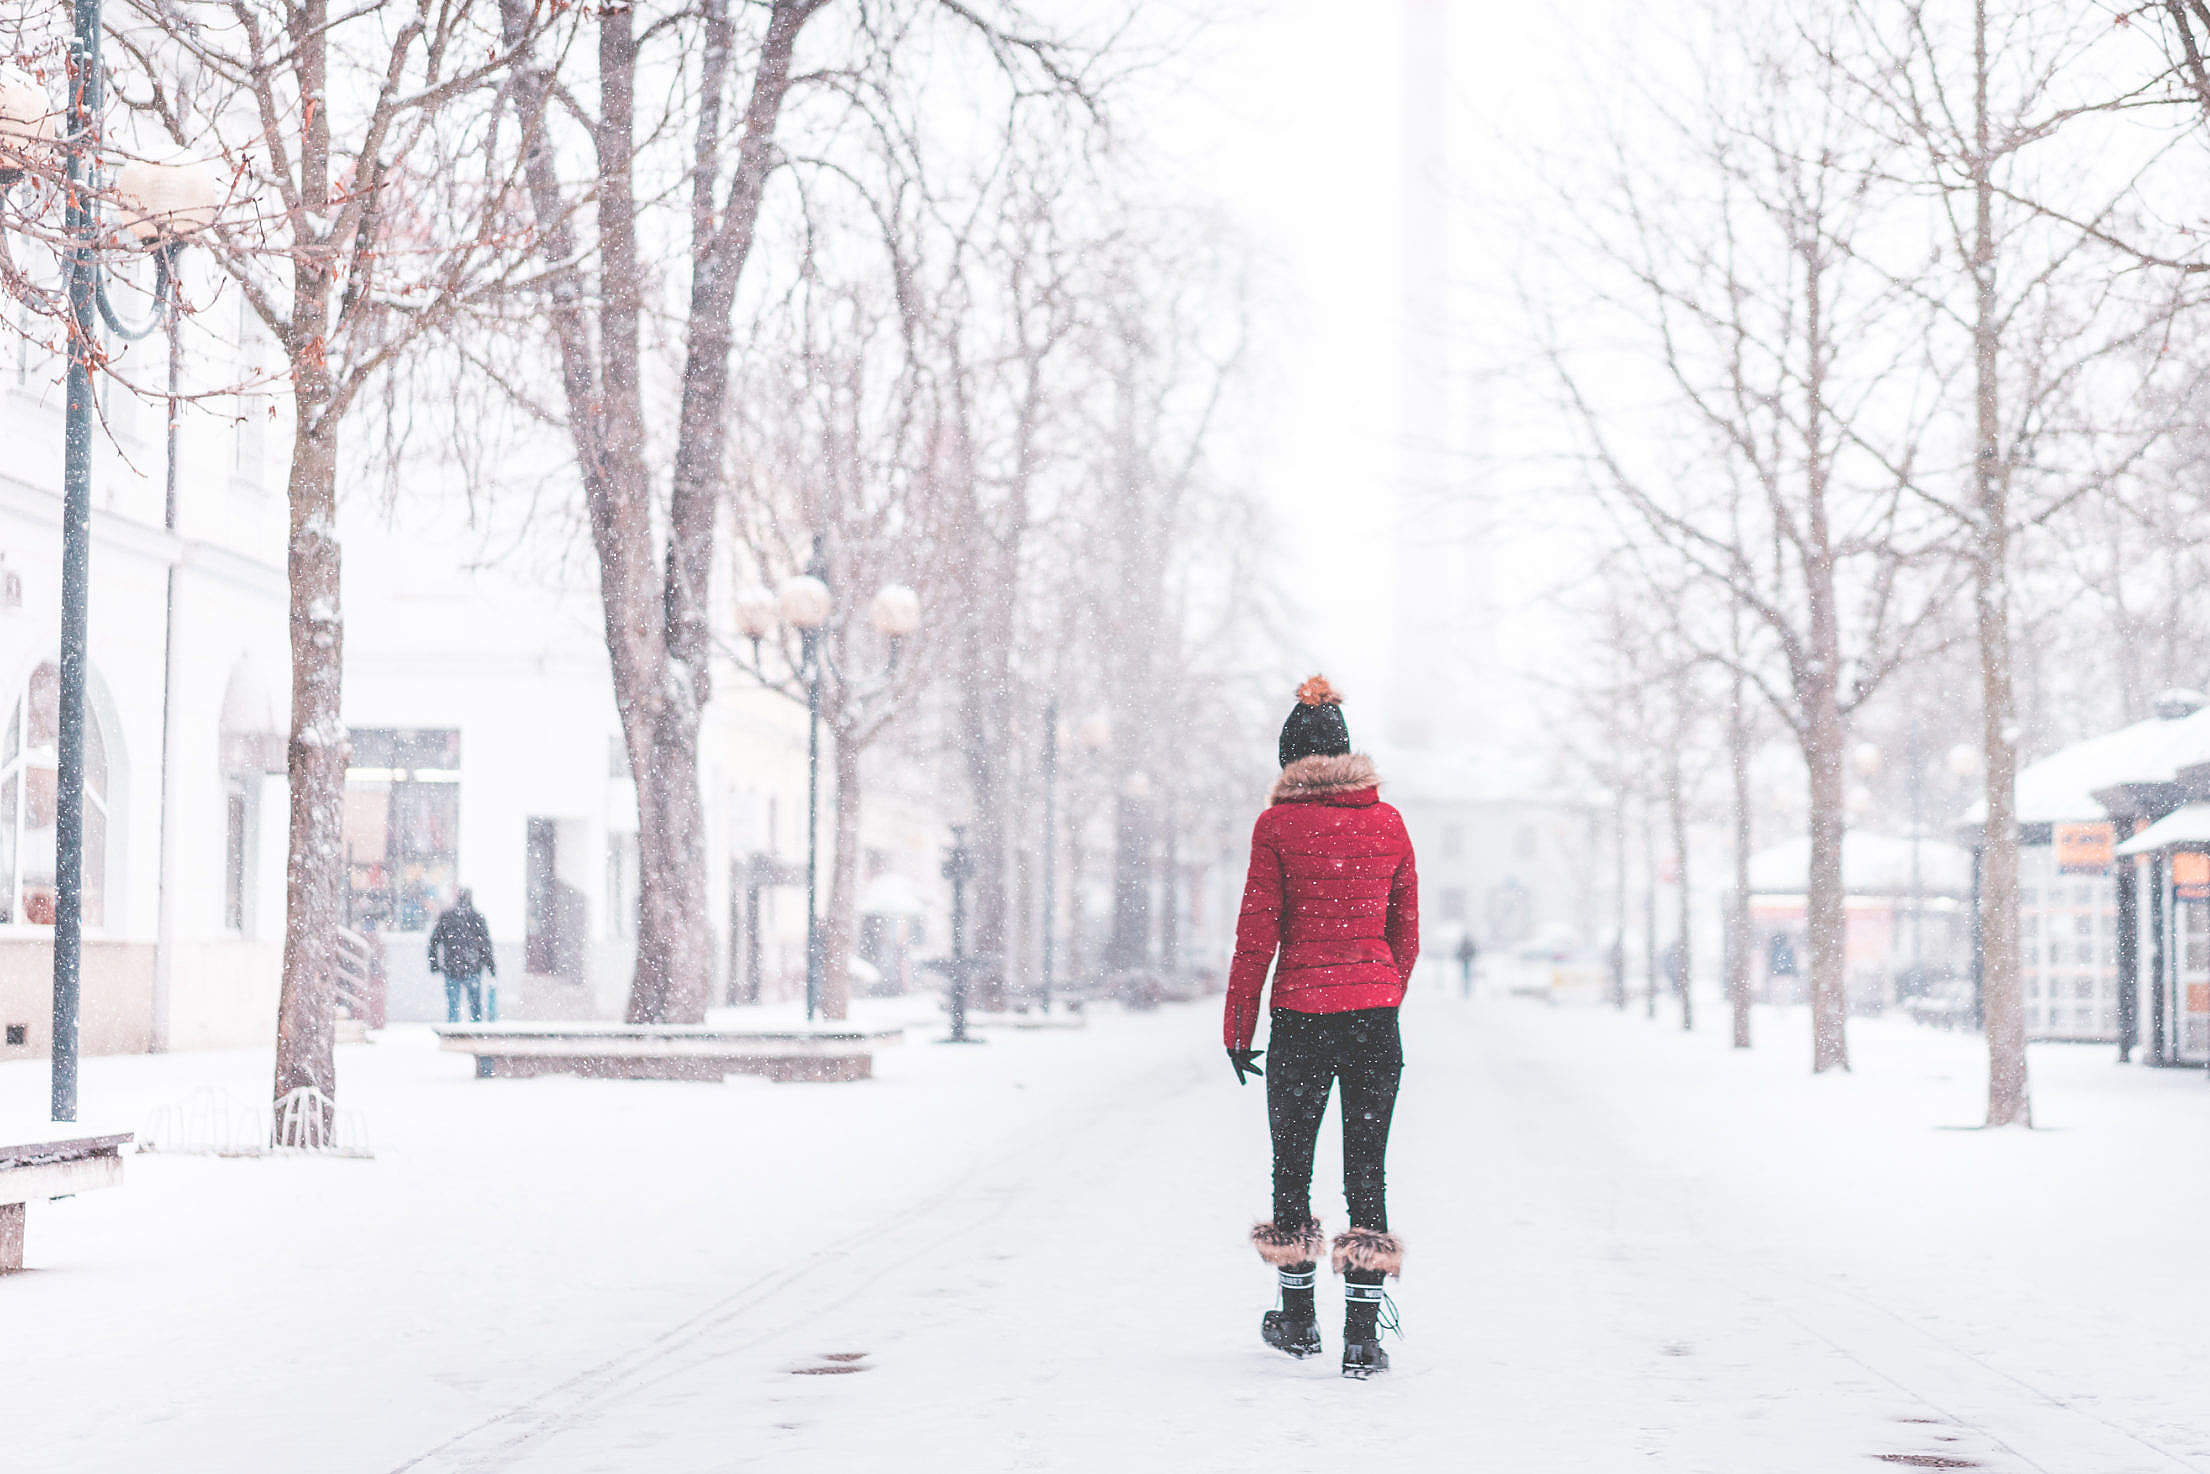 Young Woman Walking Alone in The Park in Snowy Weather Free Stock Photo